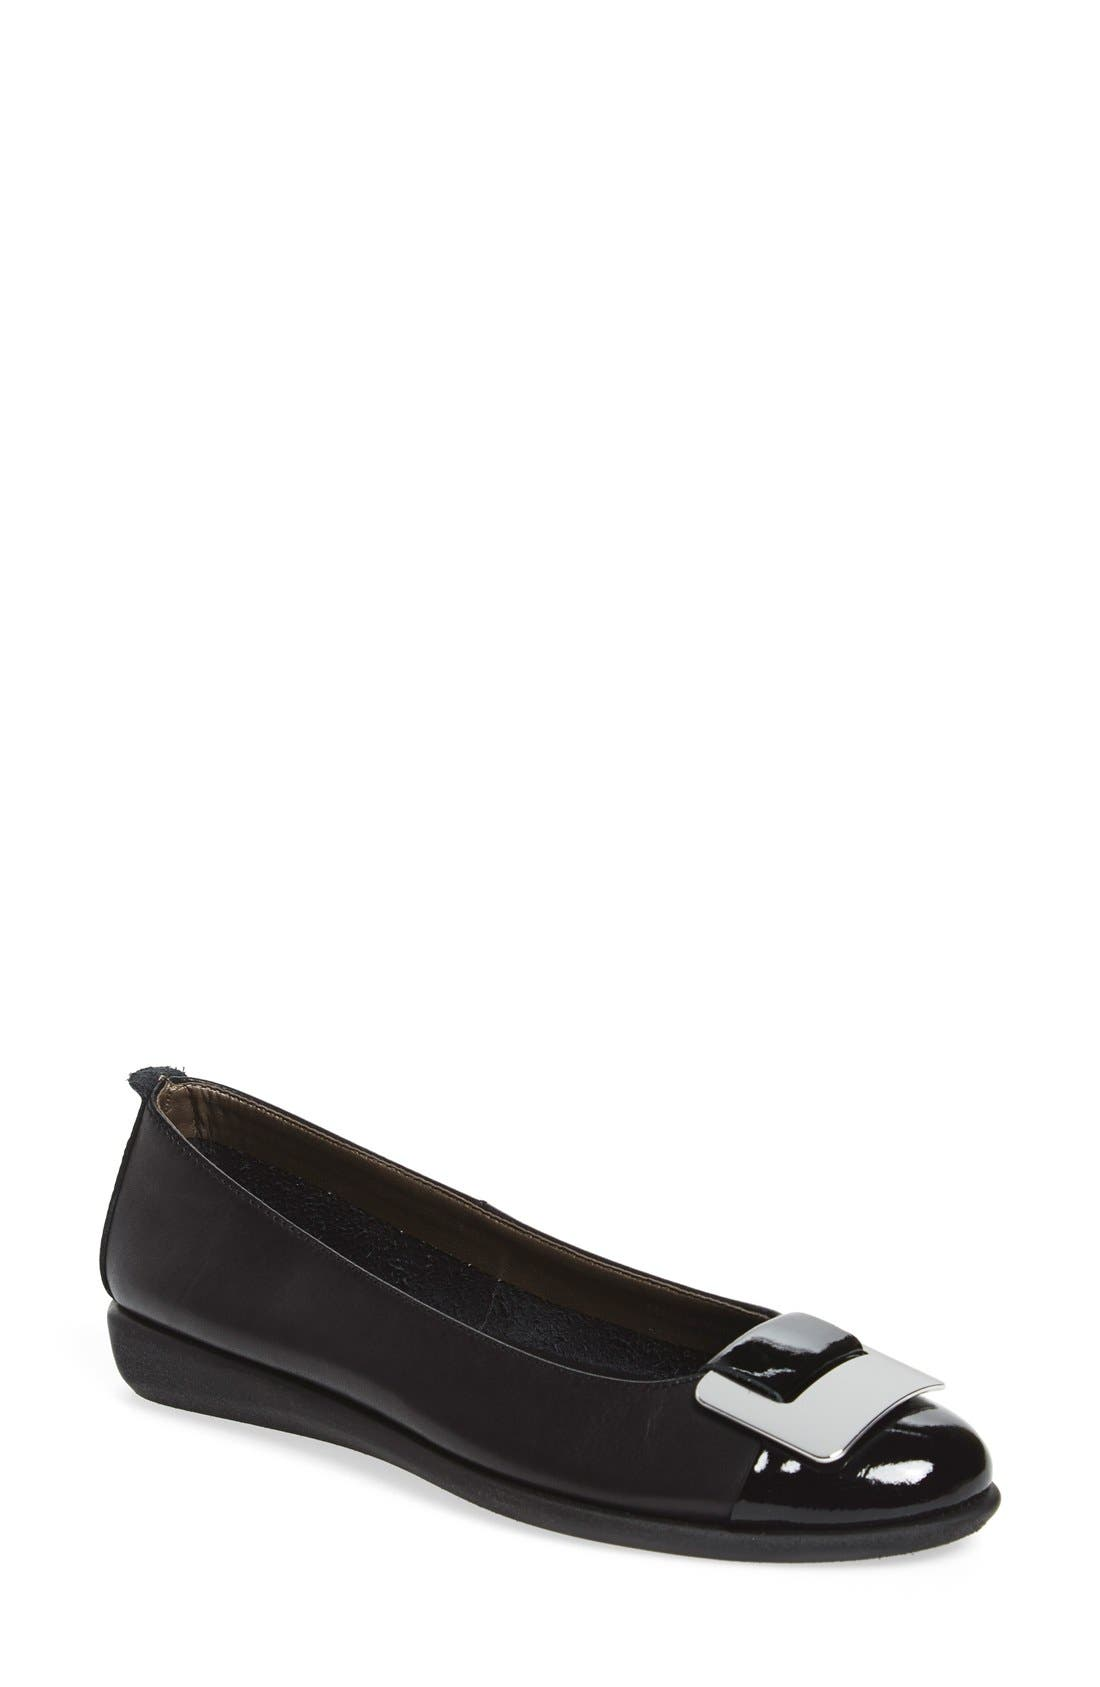 'Rise N Curry' Flat,                             Main thumbnail 1, color,                             Black Cashmere Leather